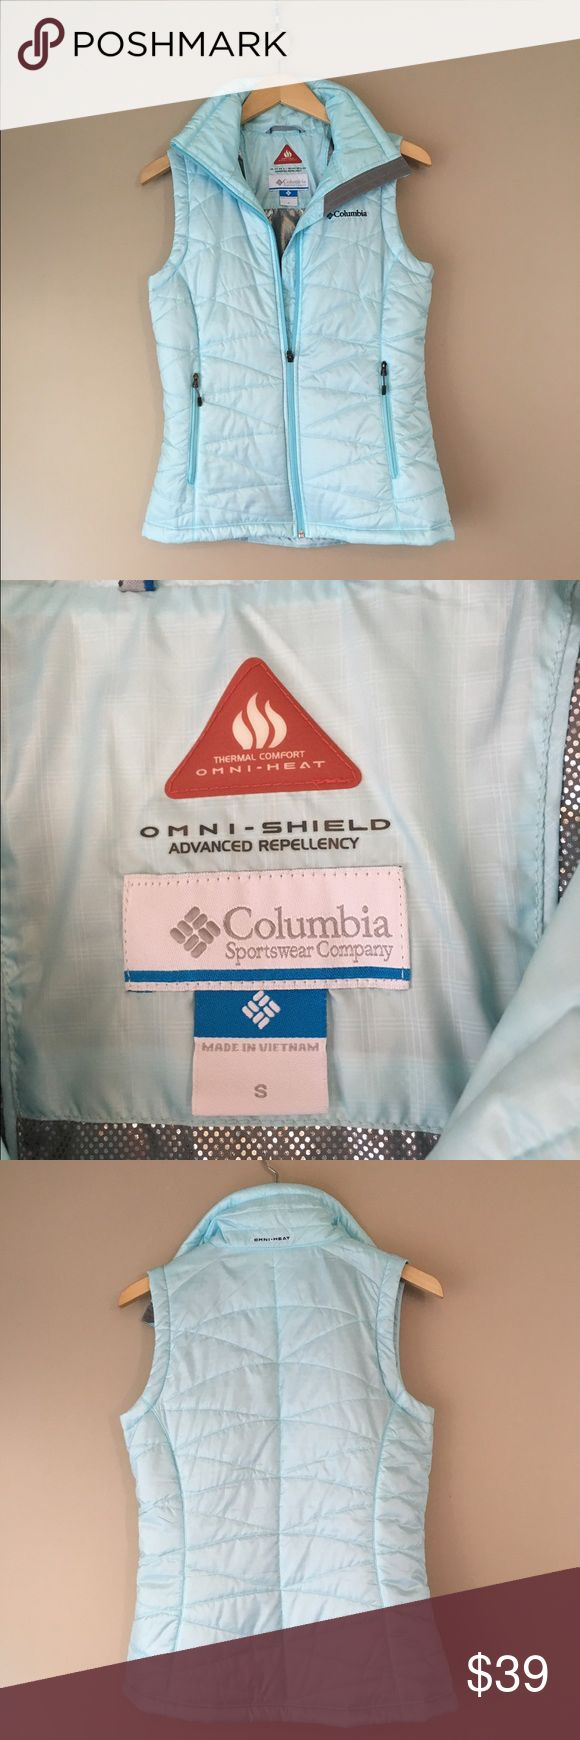 Columbia Sportswear Vest - PRETTY! Columbia Sportswear thin puffy vest in pretty ice blue. Perfect condition! Columbia Sportswear Jackets & Coats Vests